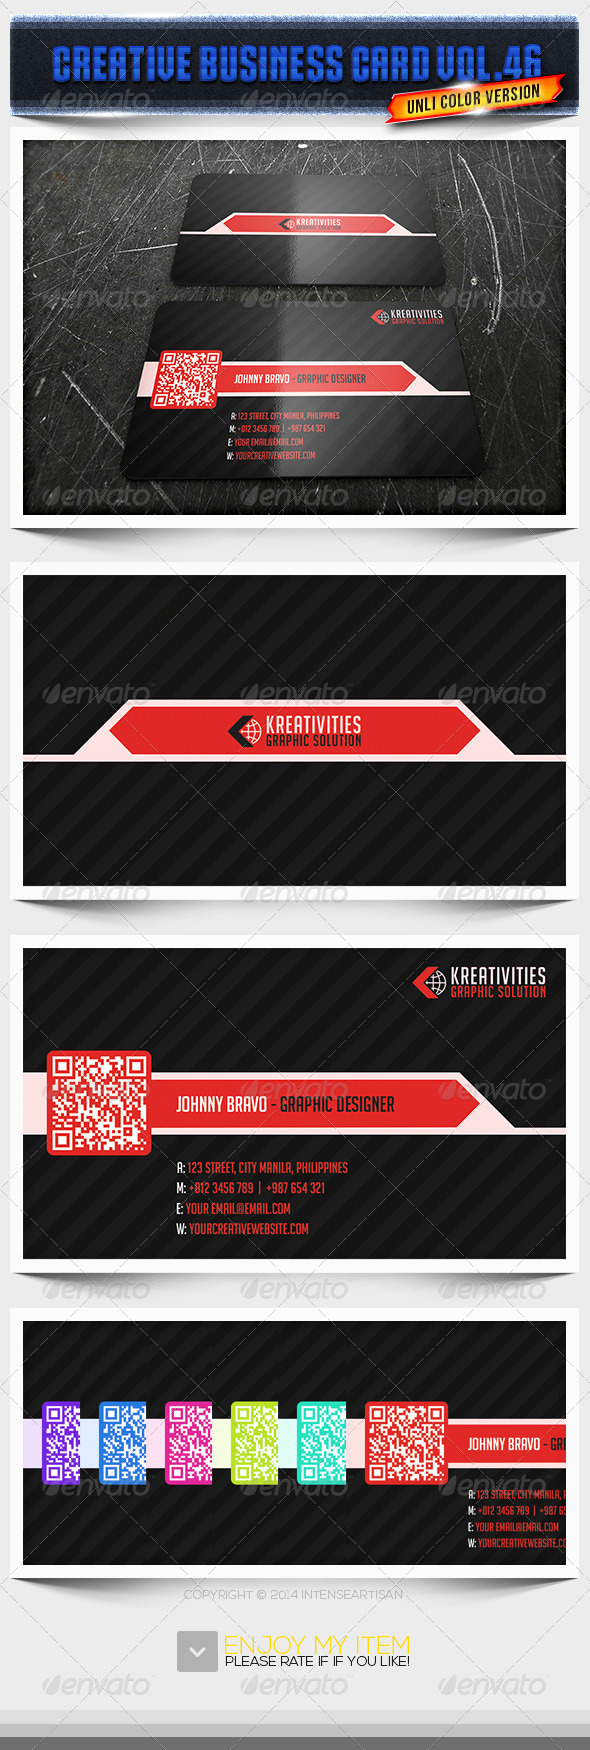 IntenseArtisan Business Card Vol.46 - Creative Business Cards